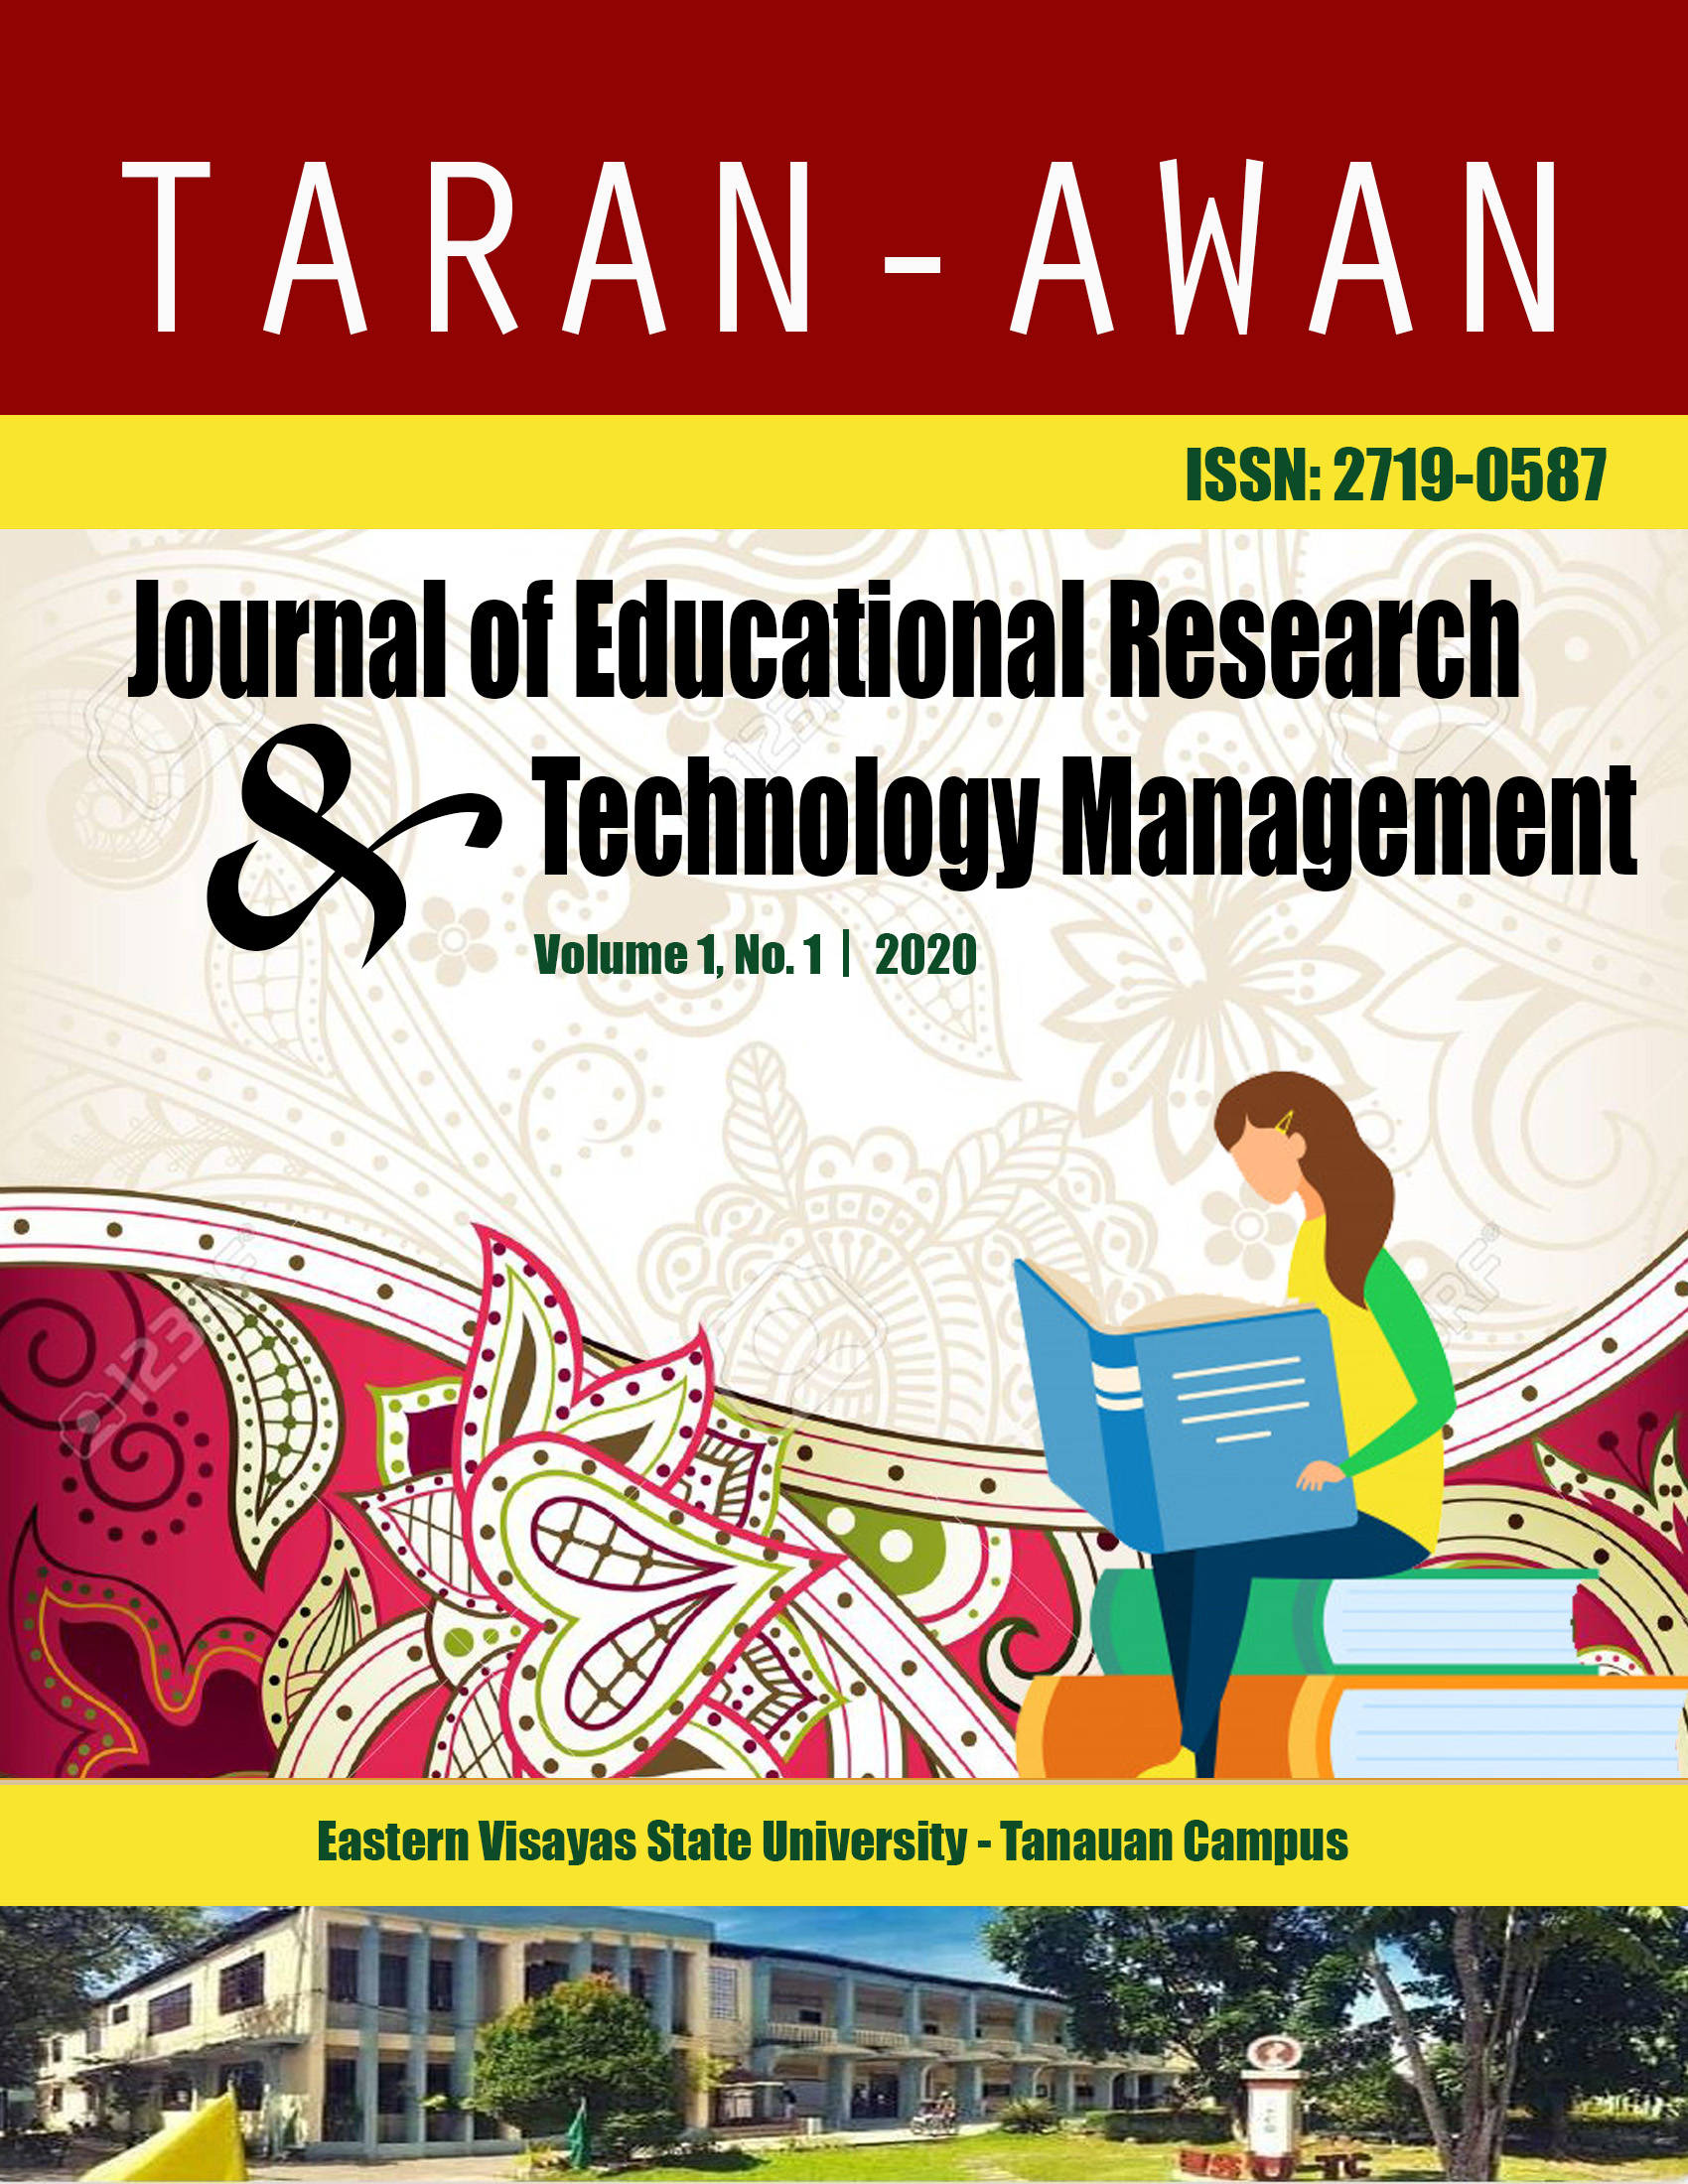 Taran-Awan Journal of Educational Research & Technology Management